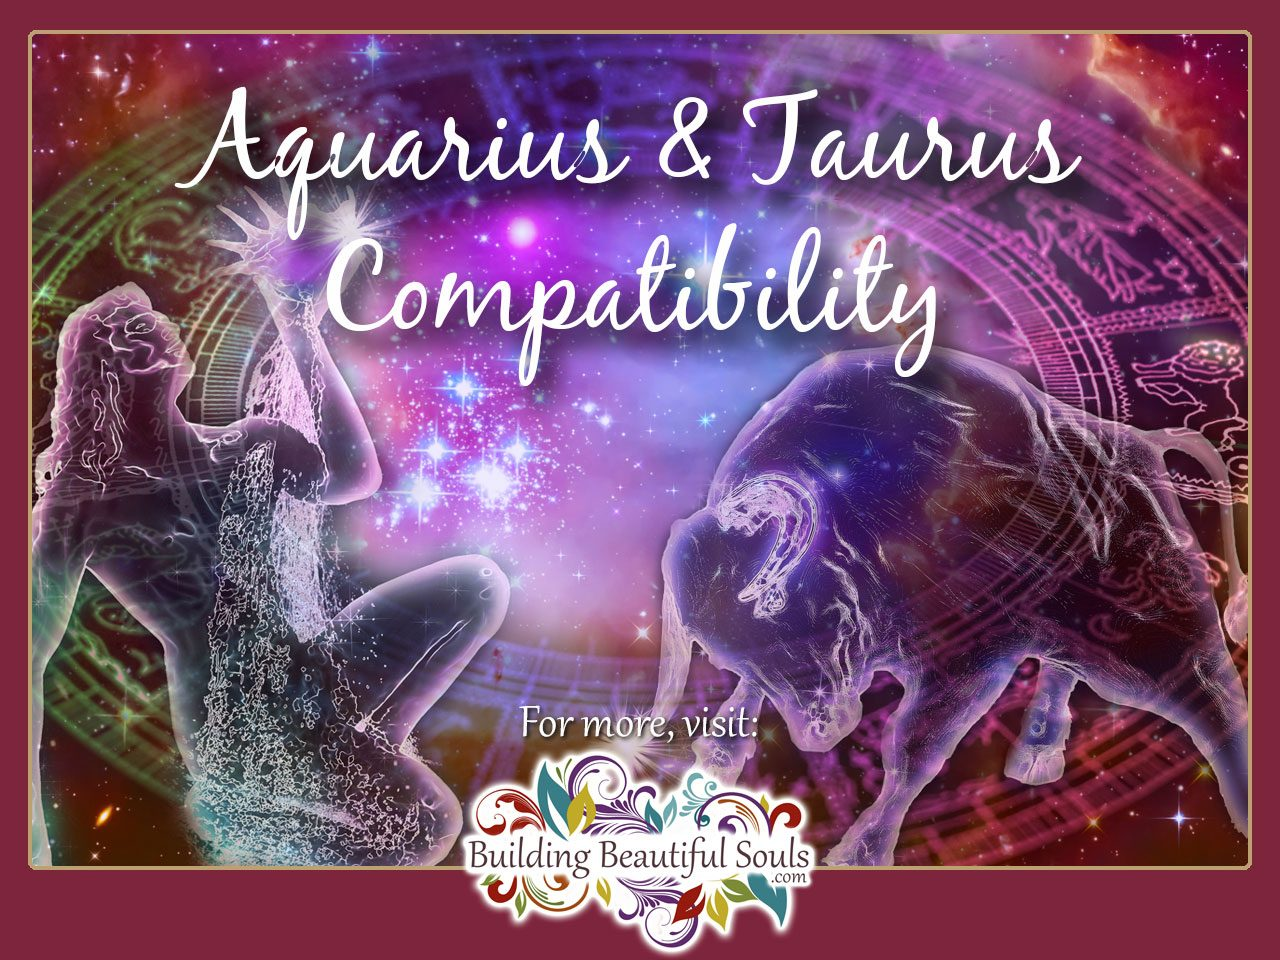 Aquarius and Taurus 1280x960